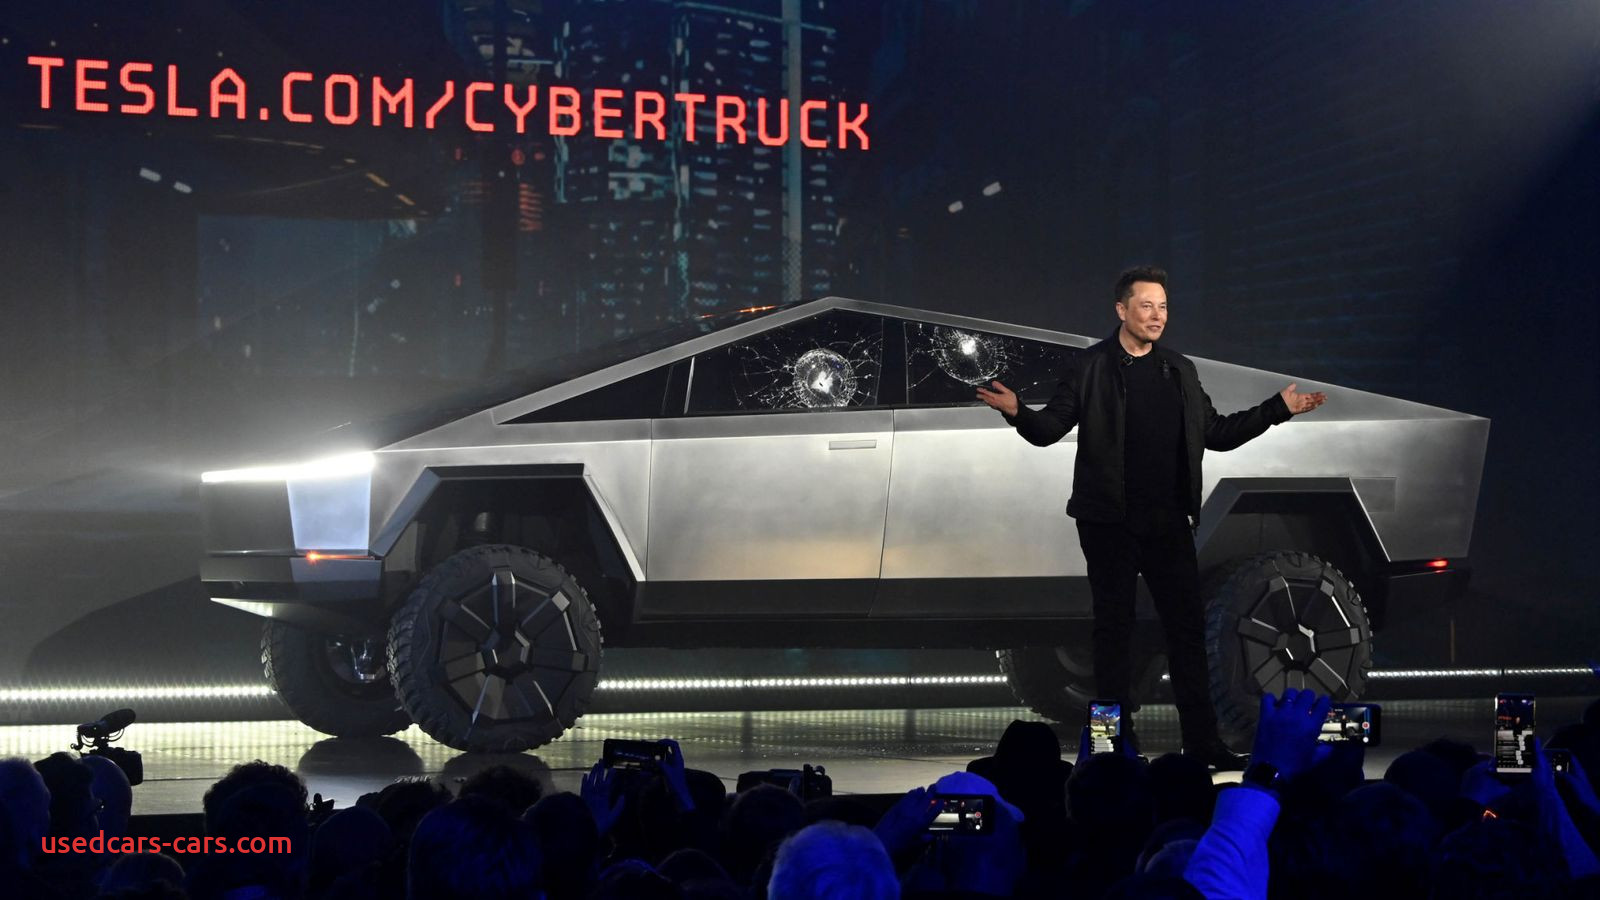 Tesla Unbreakable Glass Best Of Elon Musks fortune Hit after Tesla Cybertruck Launch